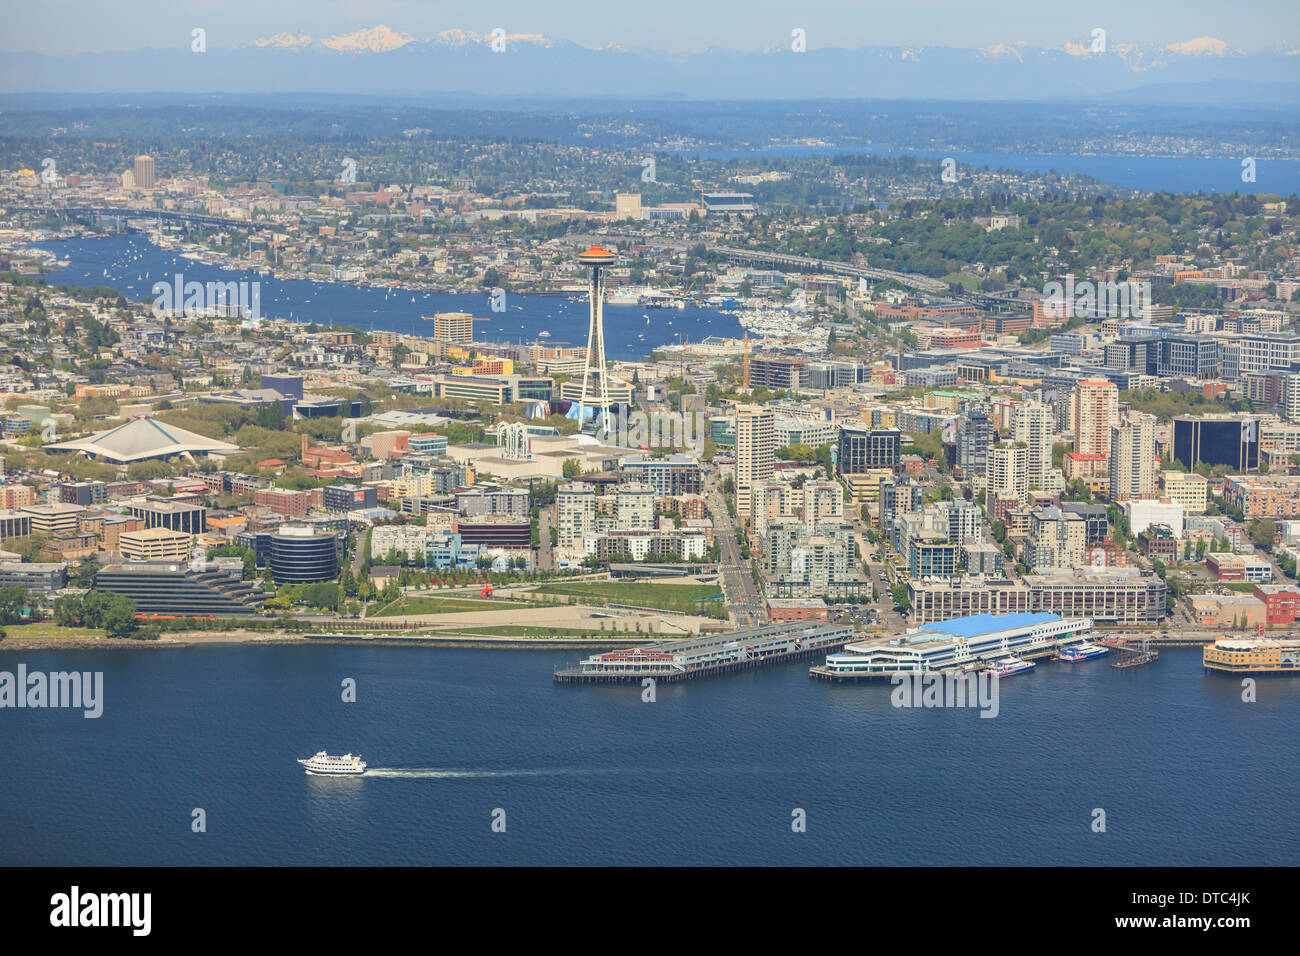 Aerial view of Seattle Waterfront, Lake Union and Cascade Mountains, Washington State - Stock Image